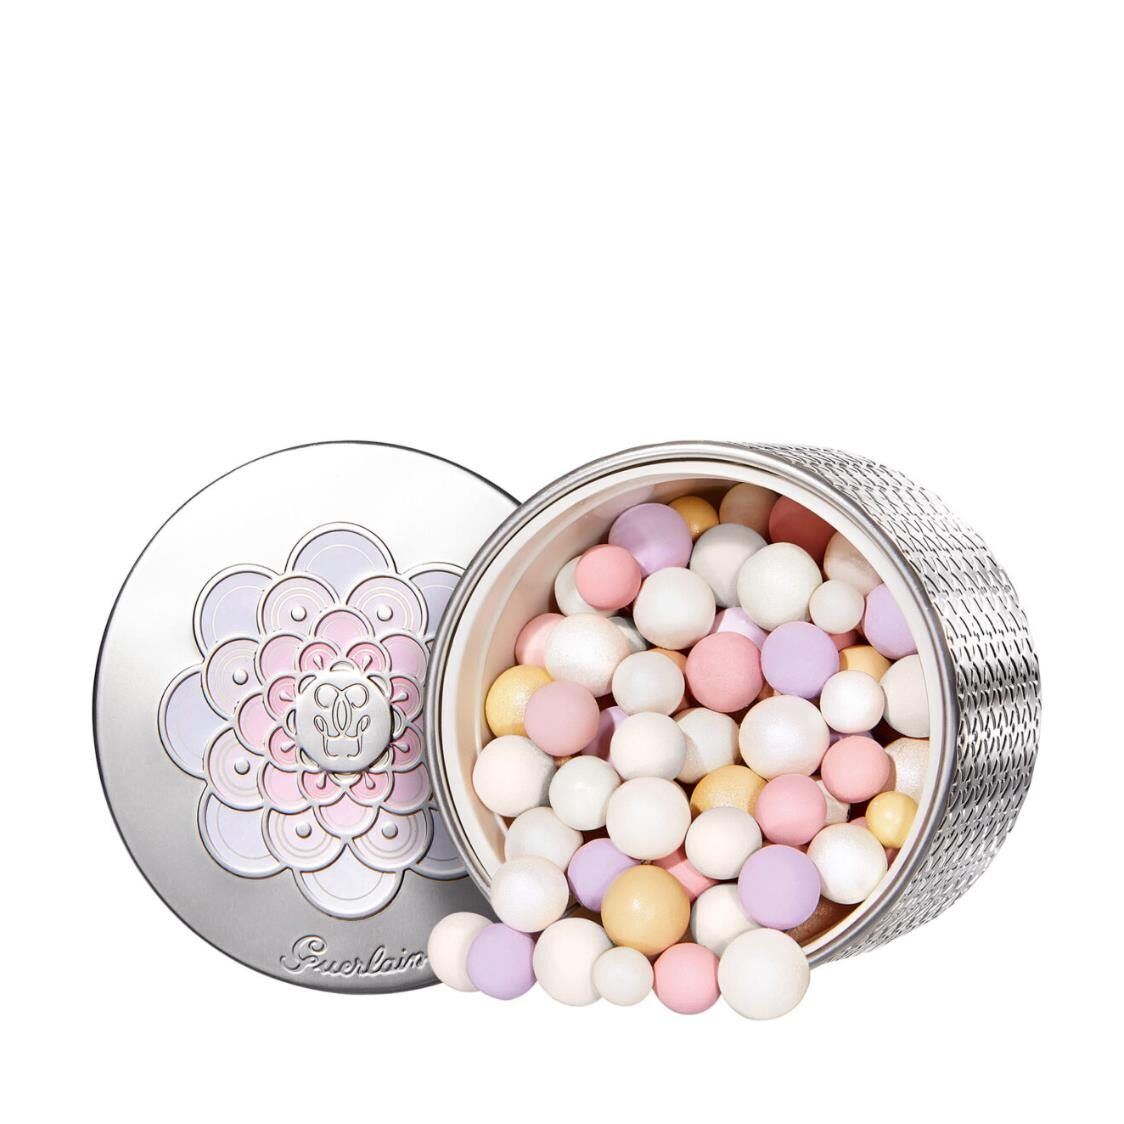 Guerlain Mtorites Light Revealing Pearls Of Powder